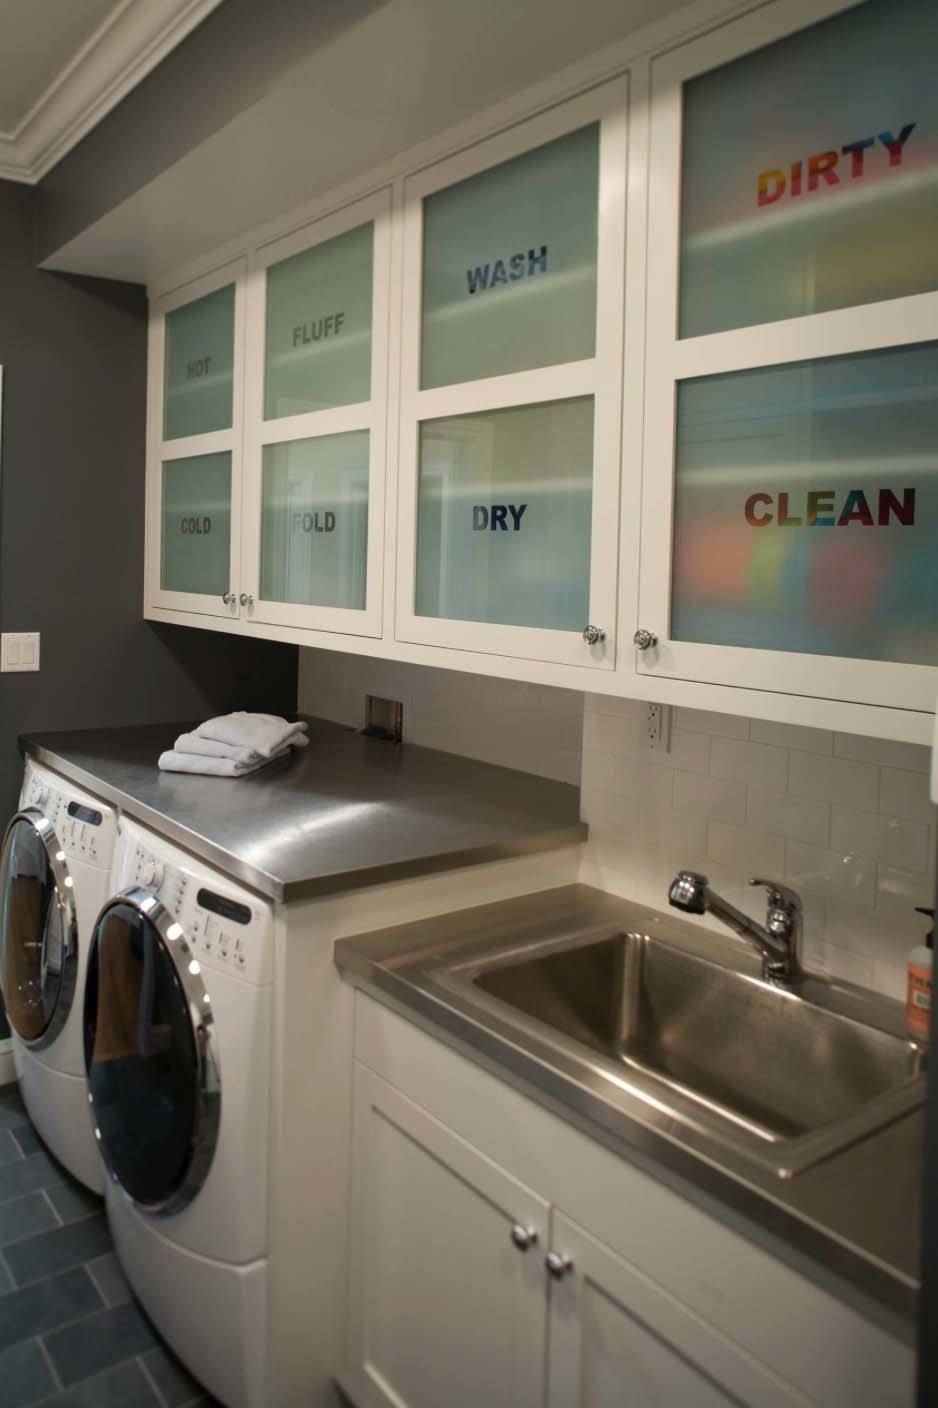 20 unique ways to bring organization to your laundry room on clever small apartment living organization bathroom ideas unique methods for an organized bathroom id=51118